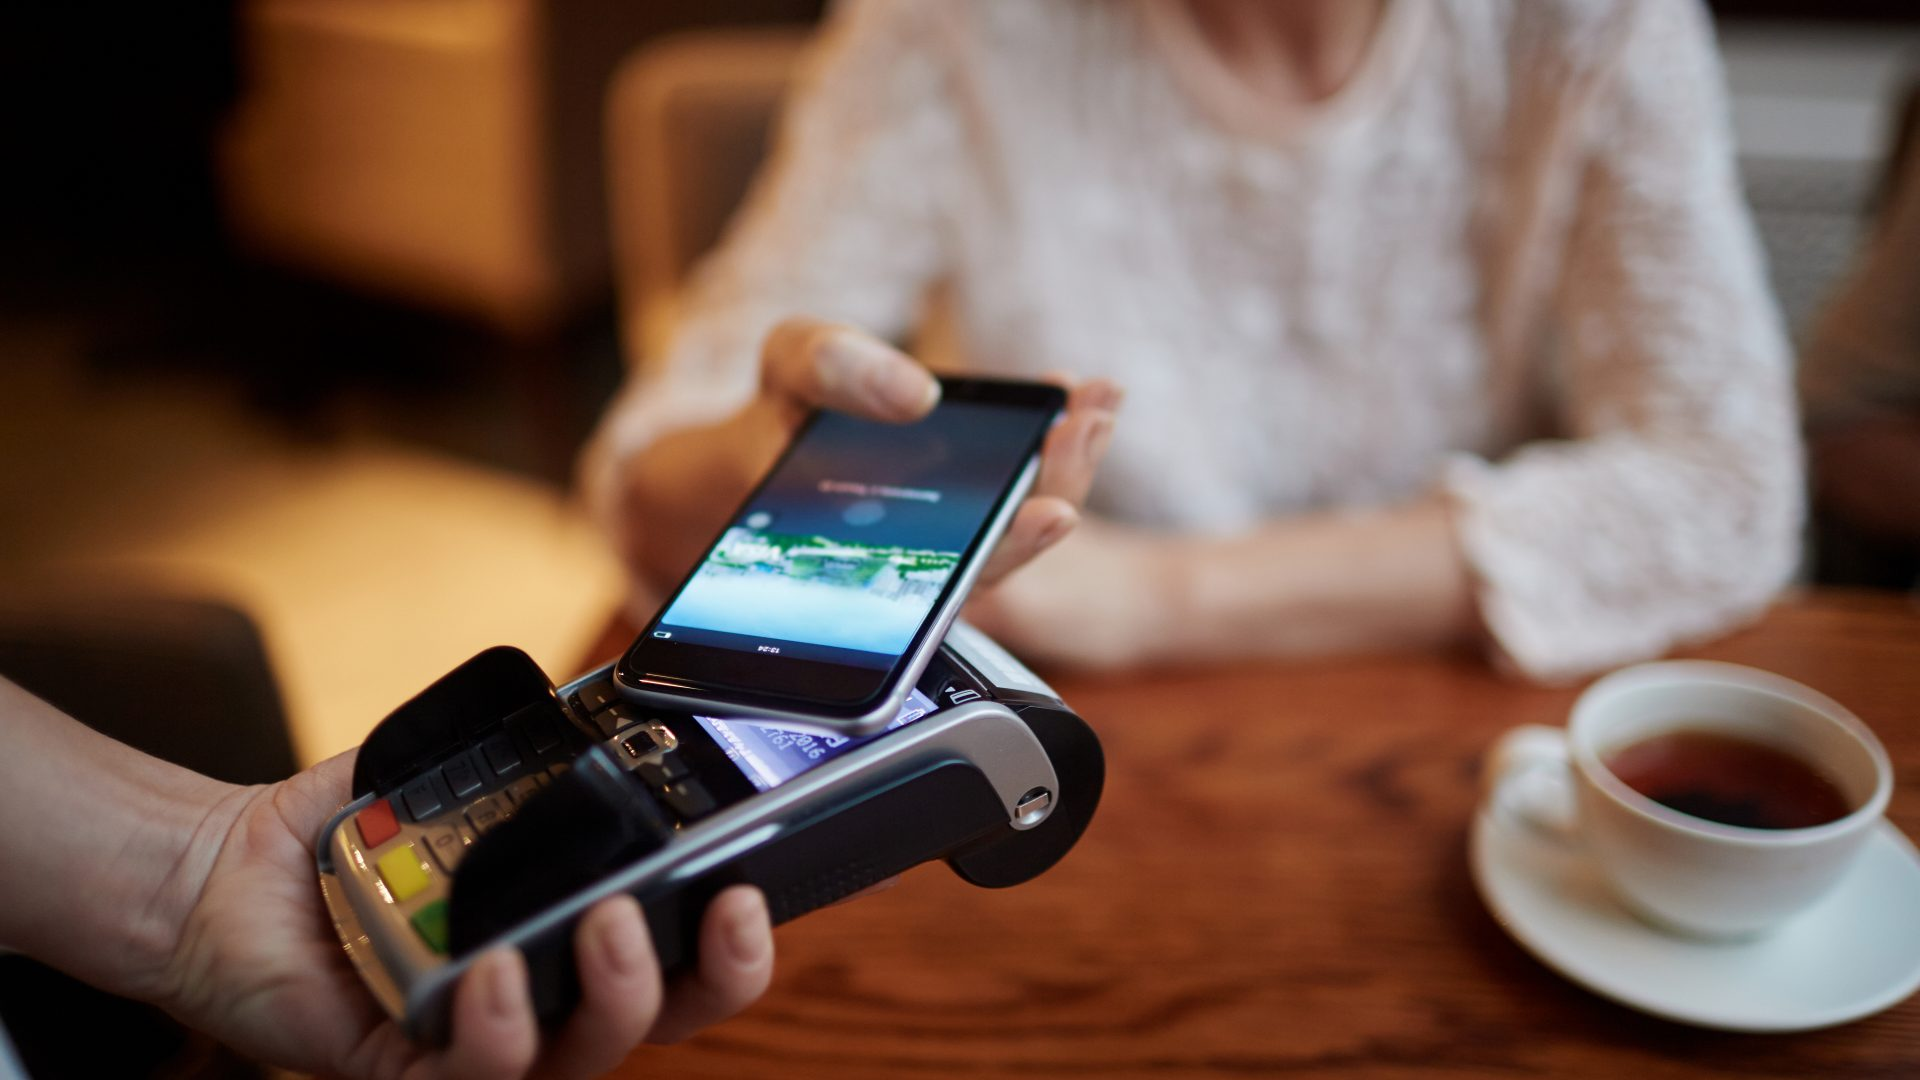 Rambus partners with Eftpos for Android Pay in Australia